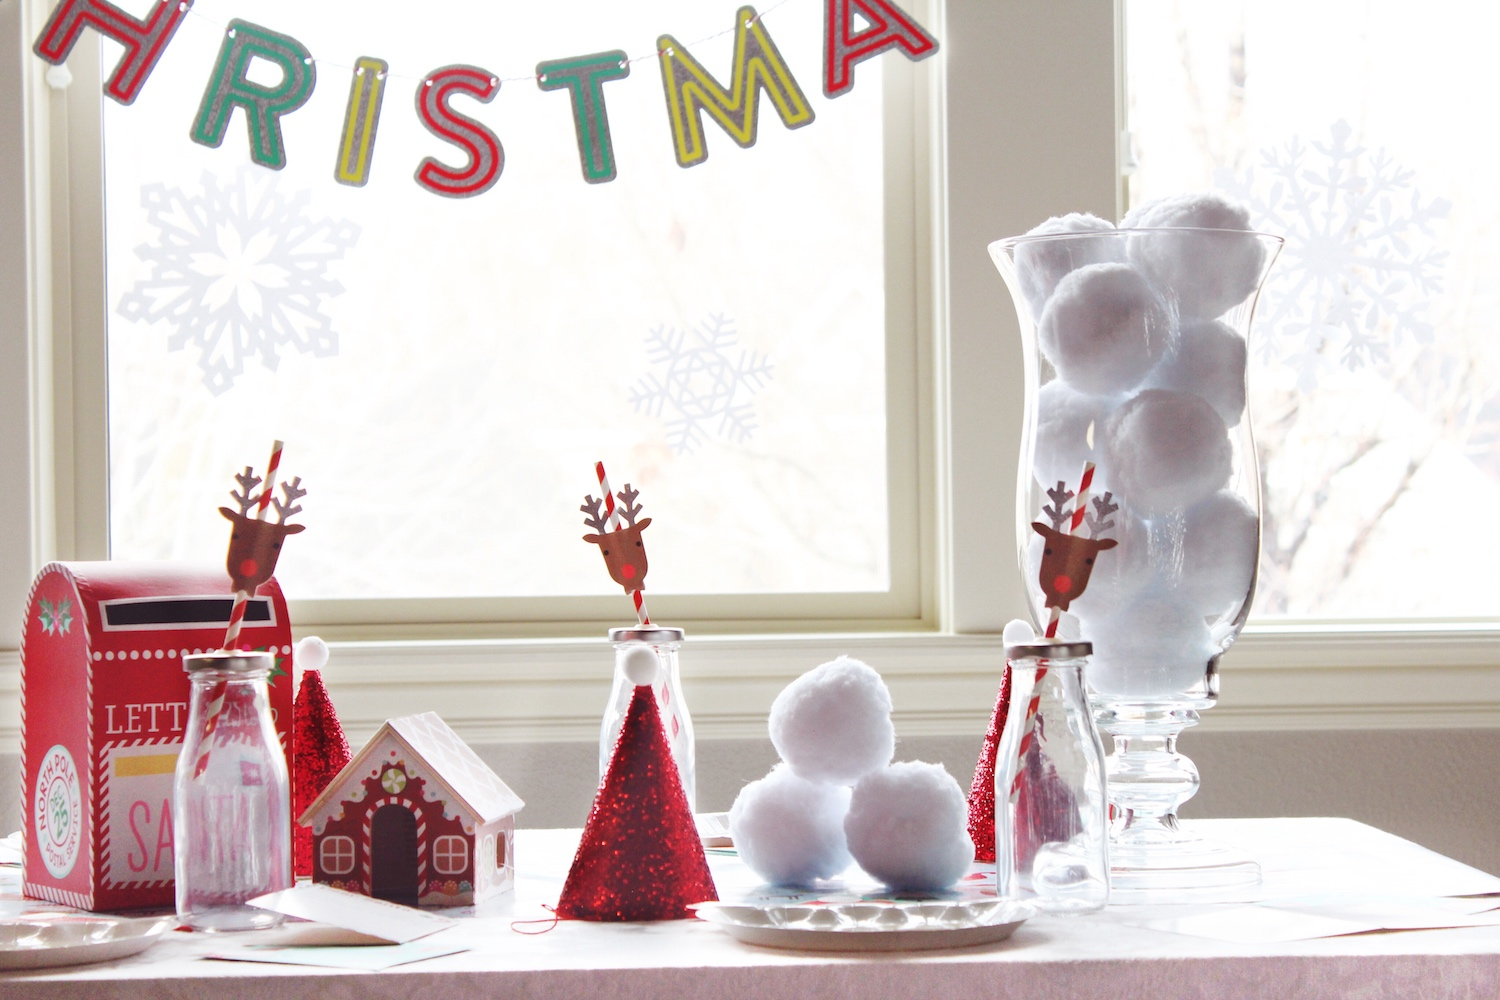 Kids Christmas Tablescape_North Pole Santa Reindeer Party_Decorations_Design Organize Party.jpg